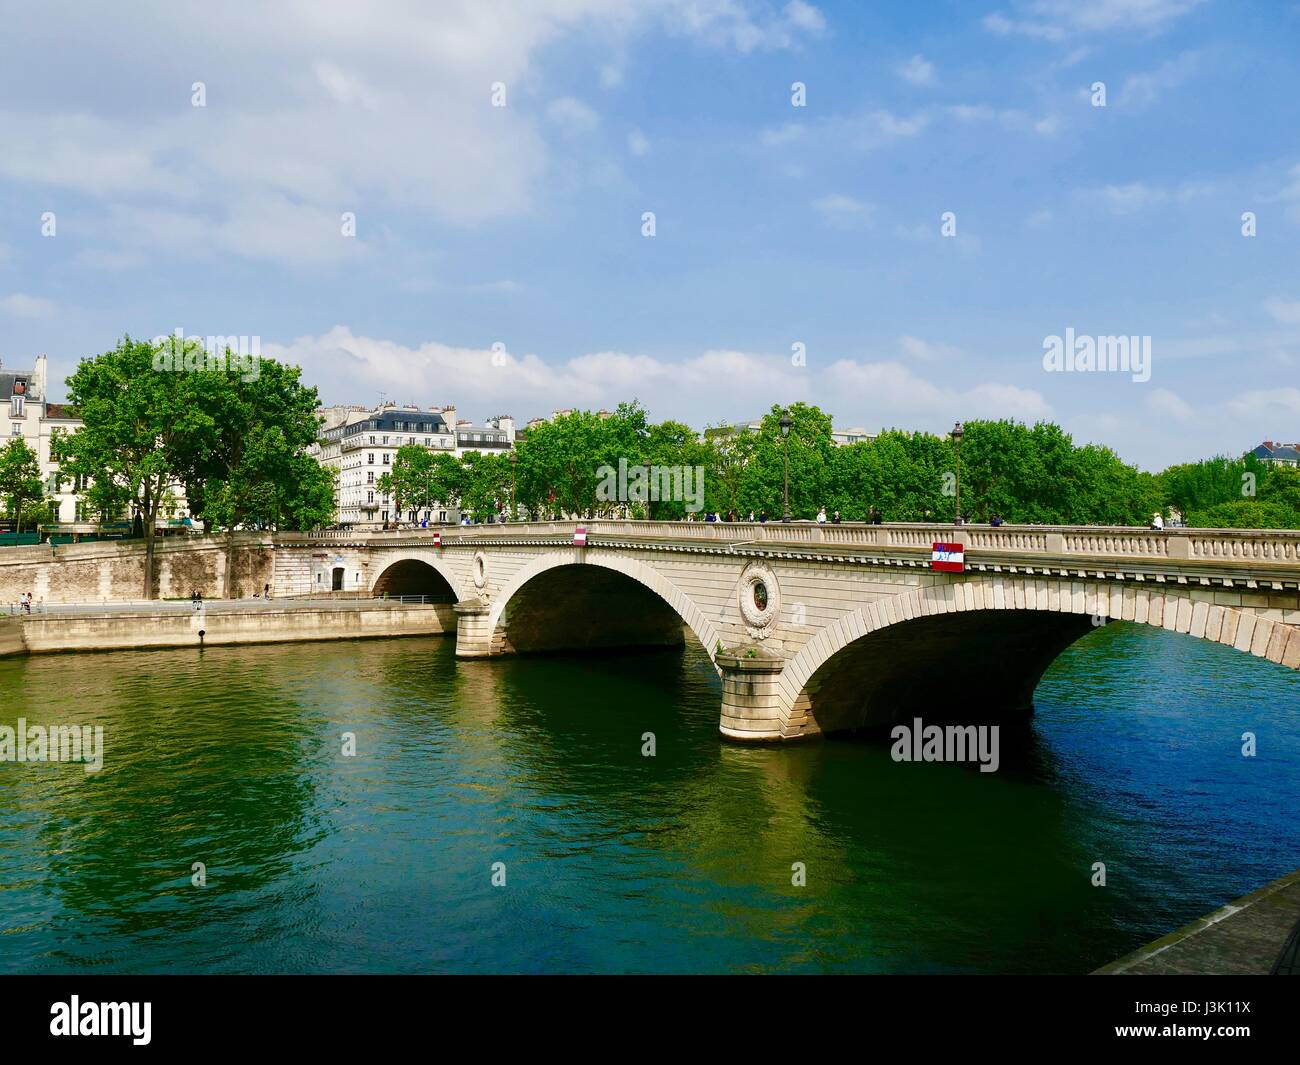 Green and blue reflection off the River Seine, Pont Marie (bridge), Paris, France. - Stock Image